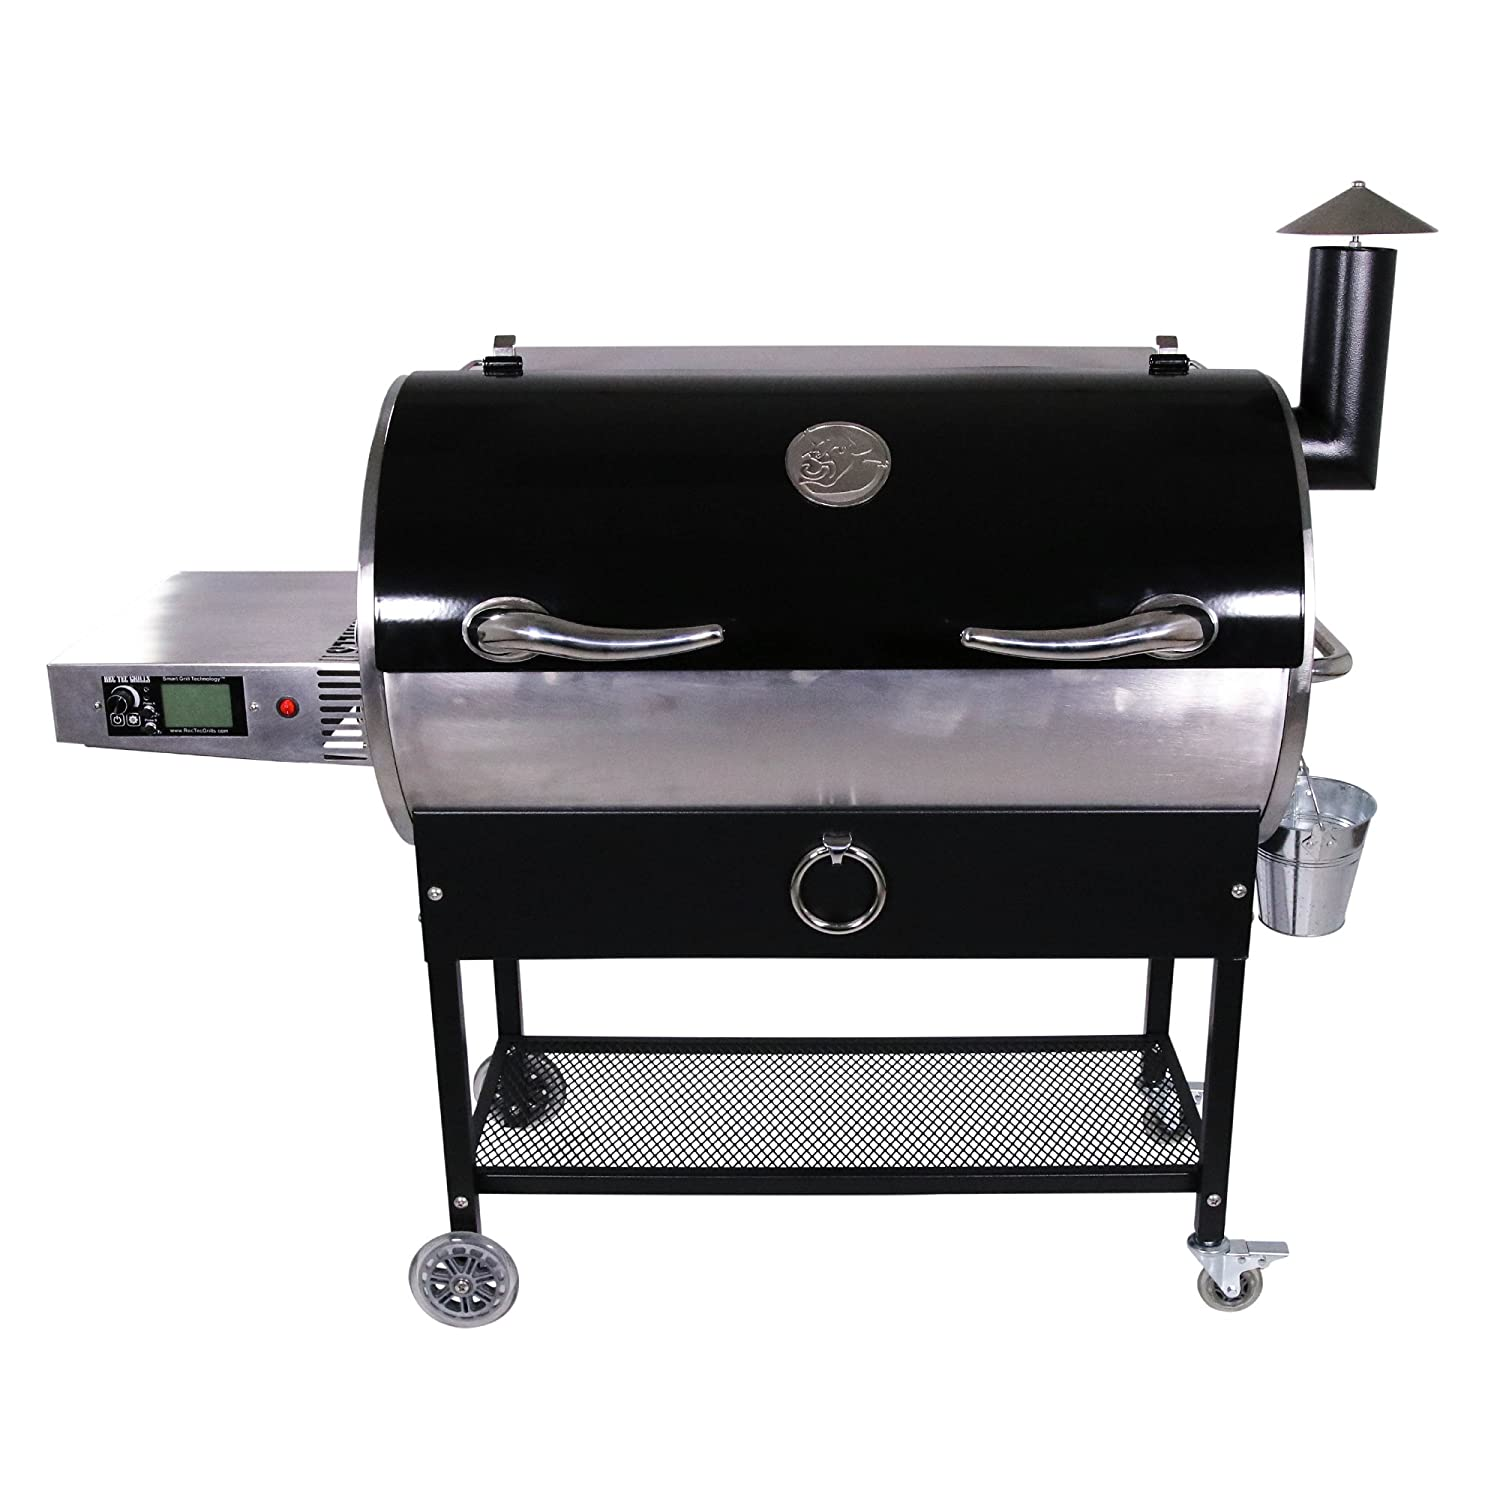 REC TEC Grills Bull RT-700 Bundle WiFi Enabled Portable Wood Pellet Grill Built in Meat Probes Stainless Steel 40lb Hopper 6 Year Warranty Hotflash Ceramic Ignition System